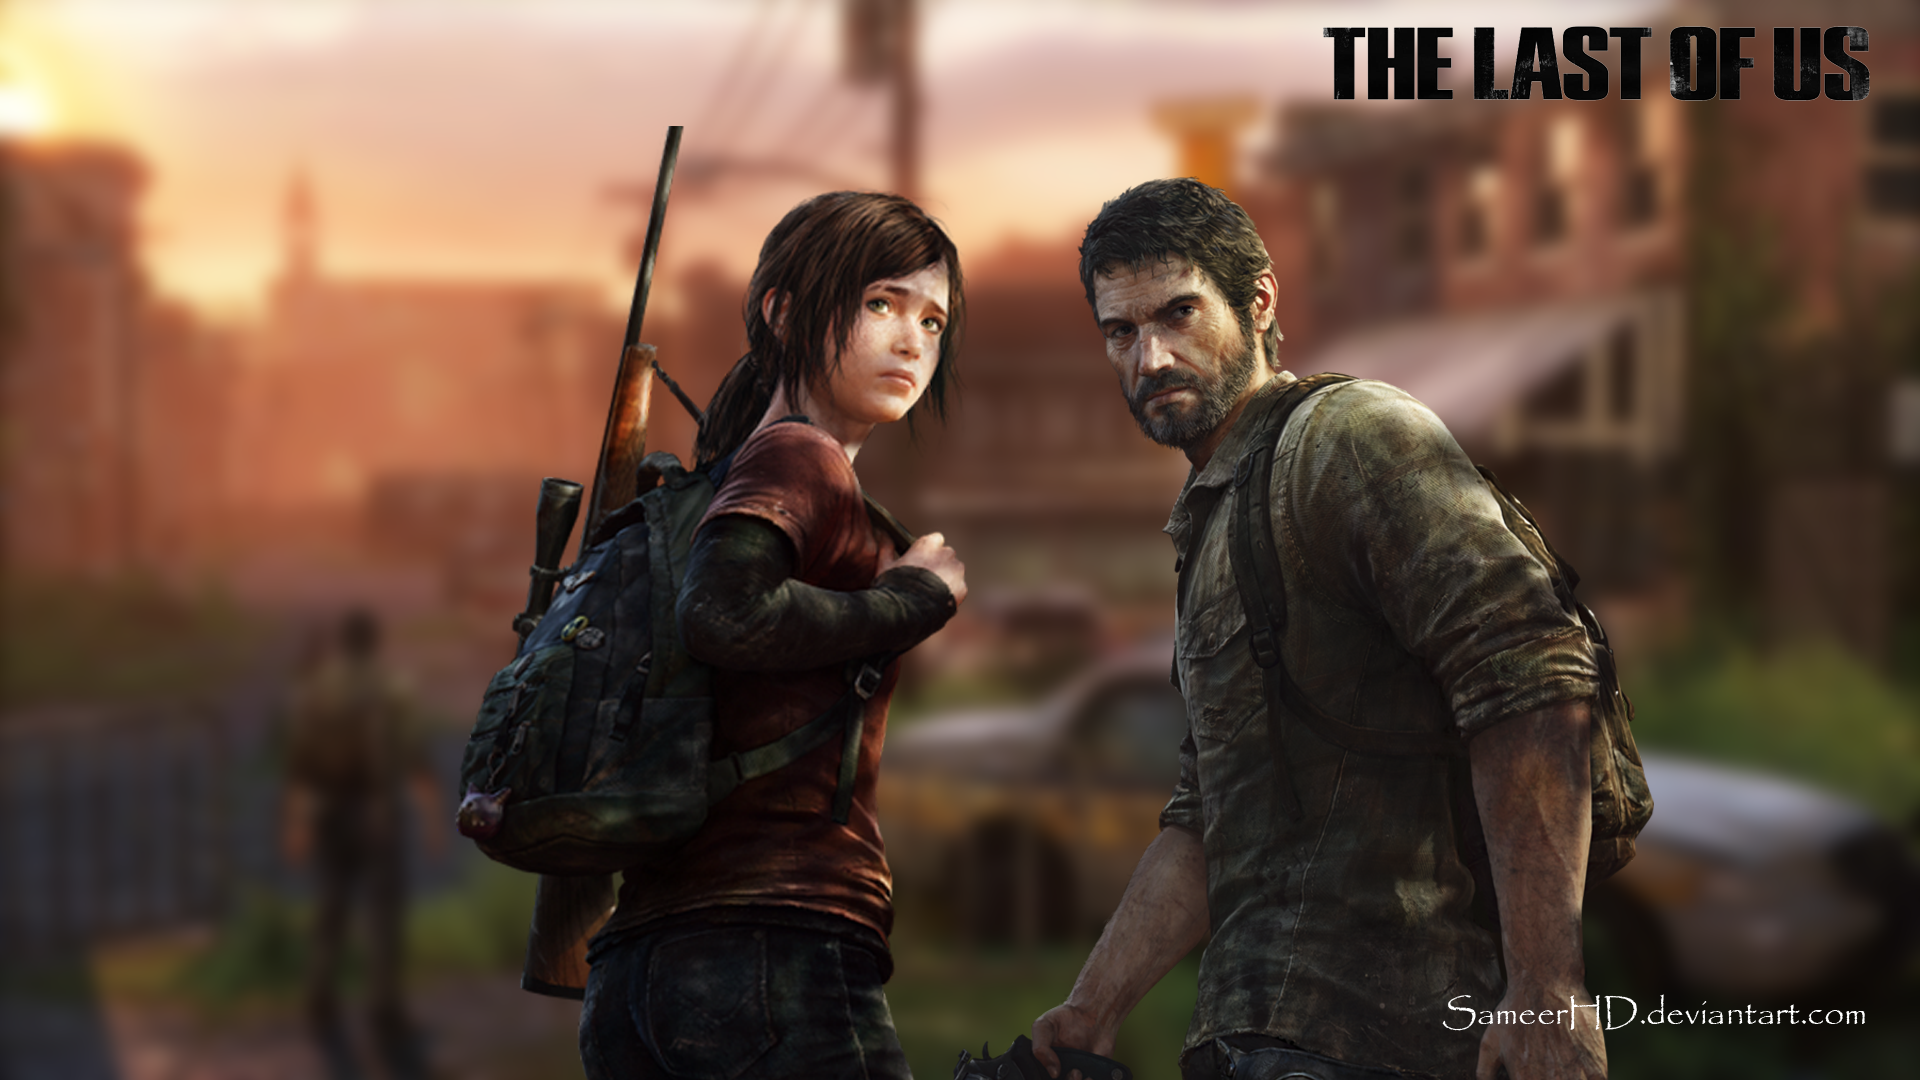 The Last Of Us Joel And Ellie Wallpaper By Sameerhd On Deviantart